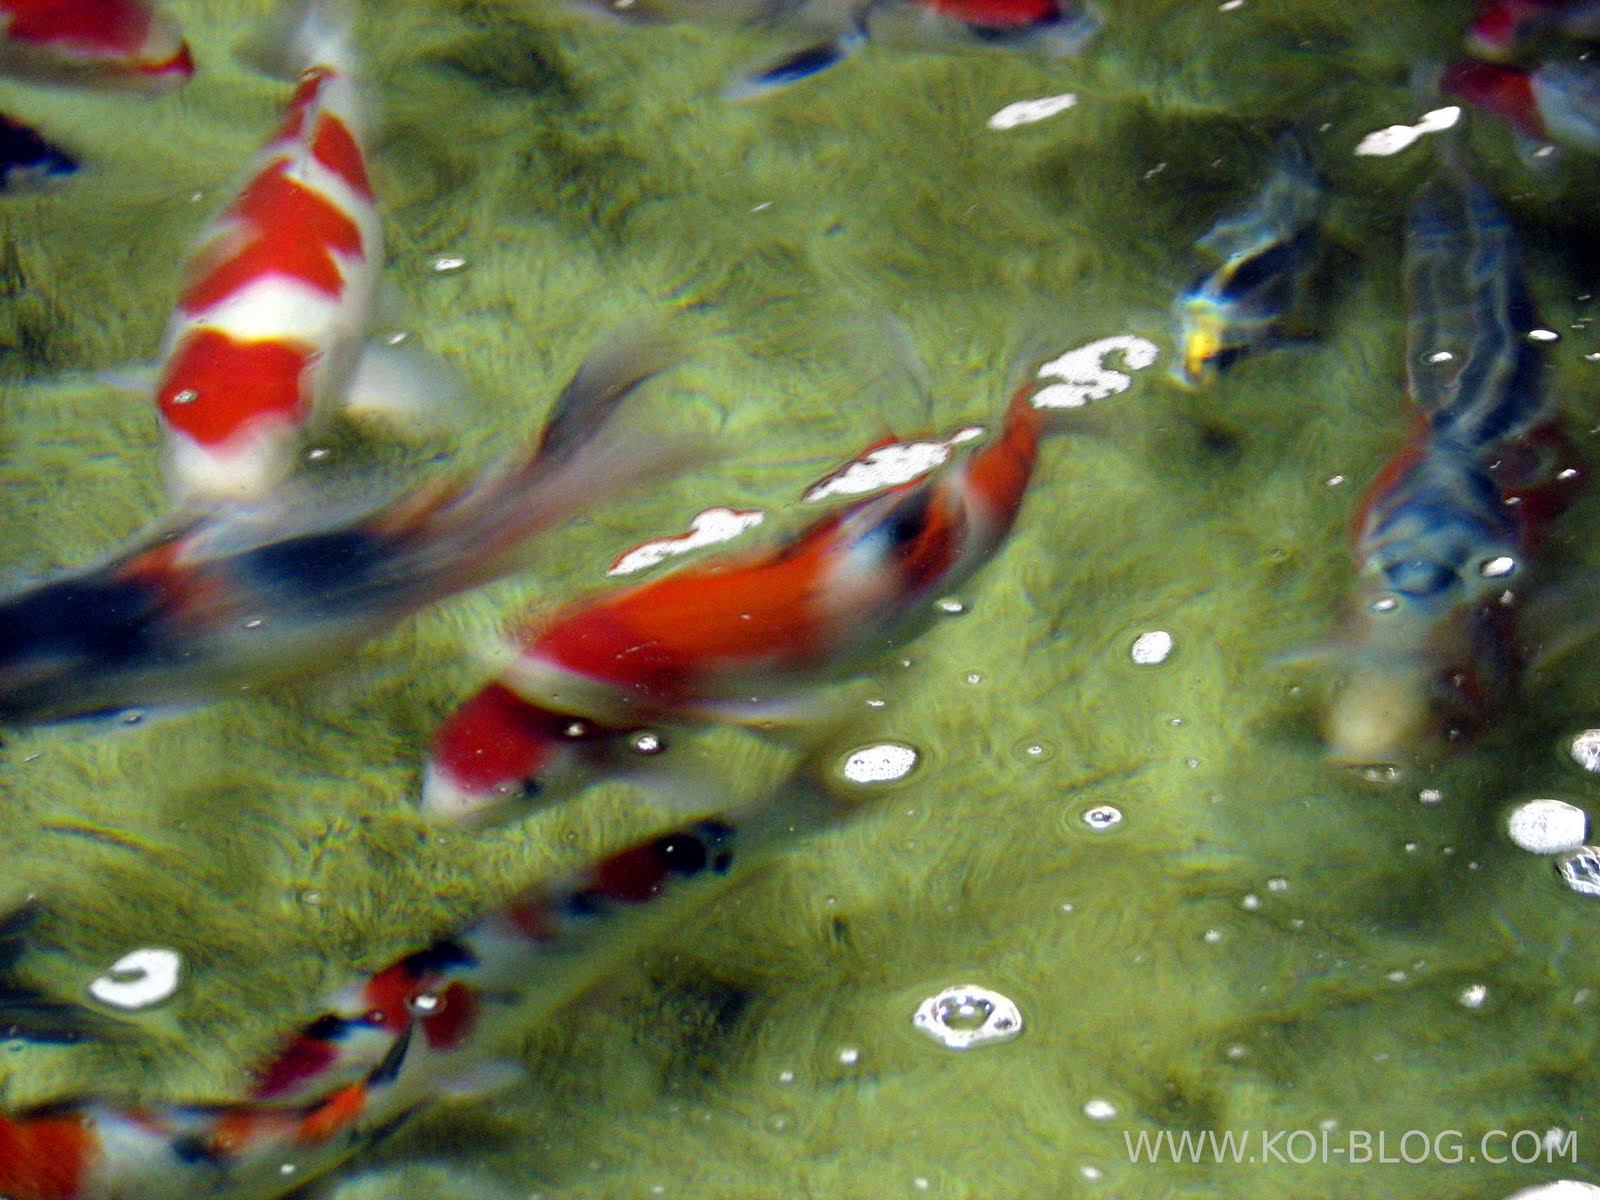 Koi Blog Koi Fish Varieties